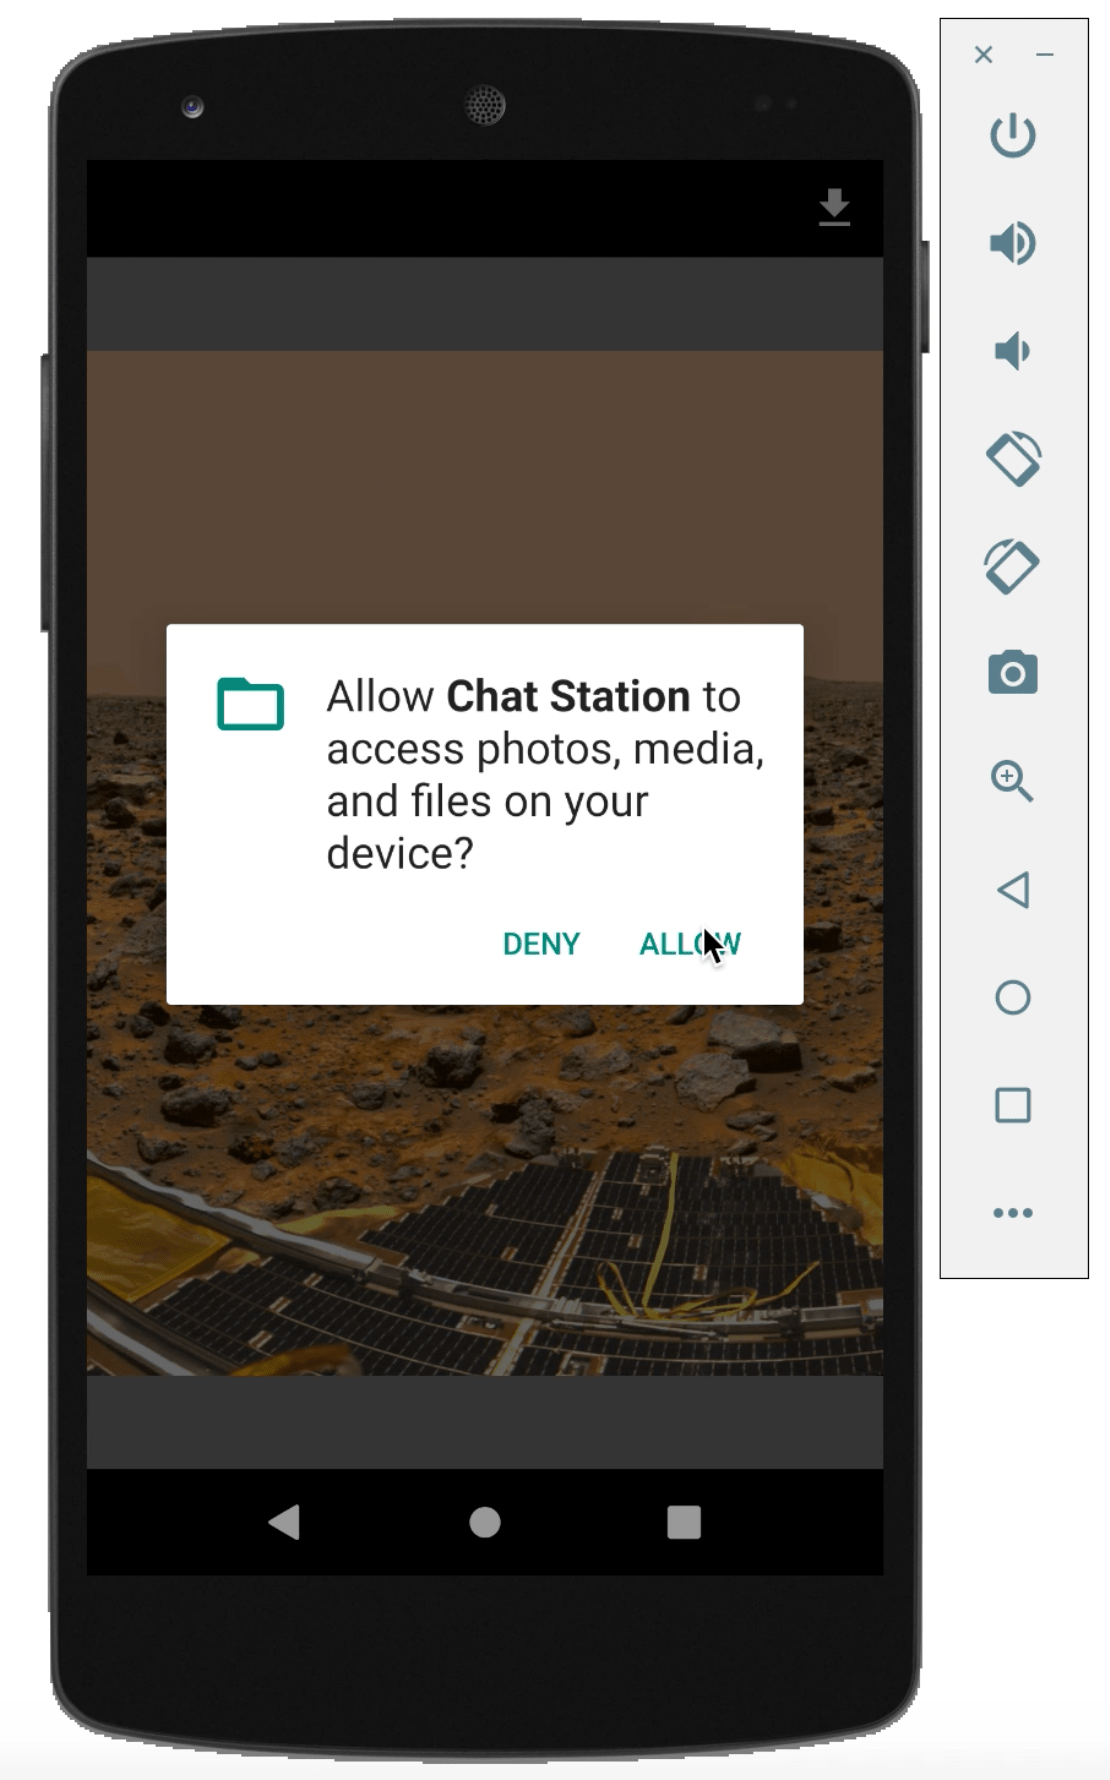 Download image from HTTP to android external storage - Android Java